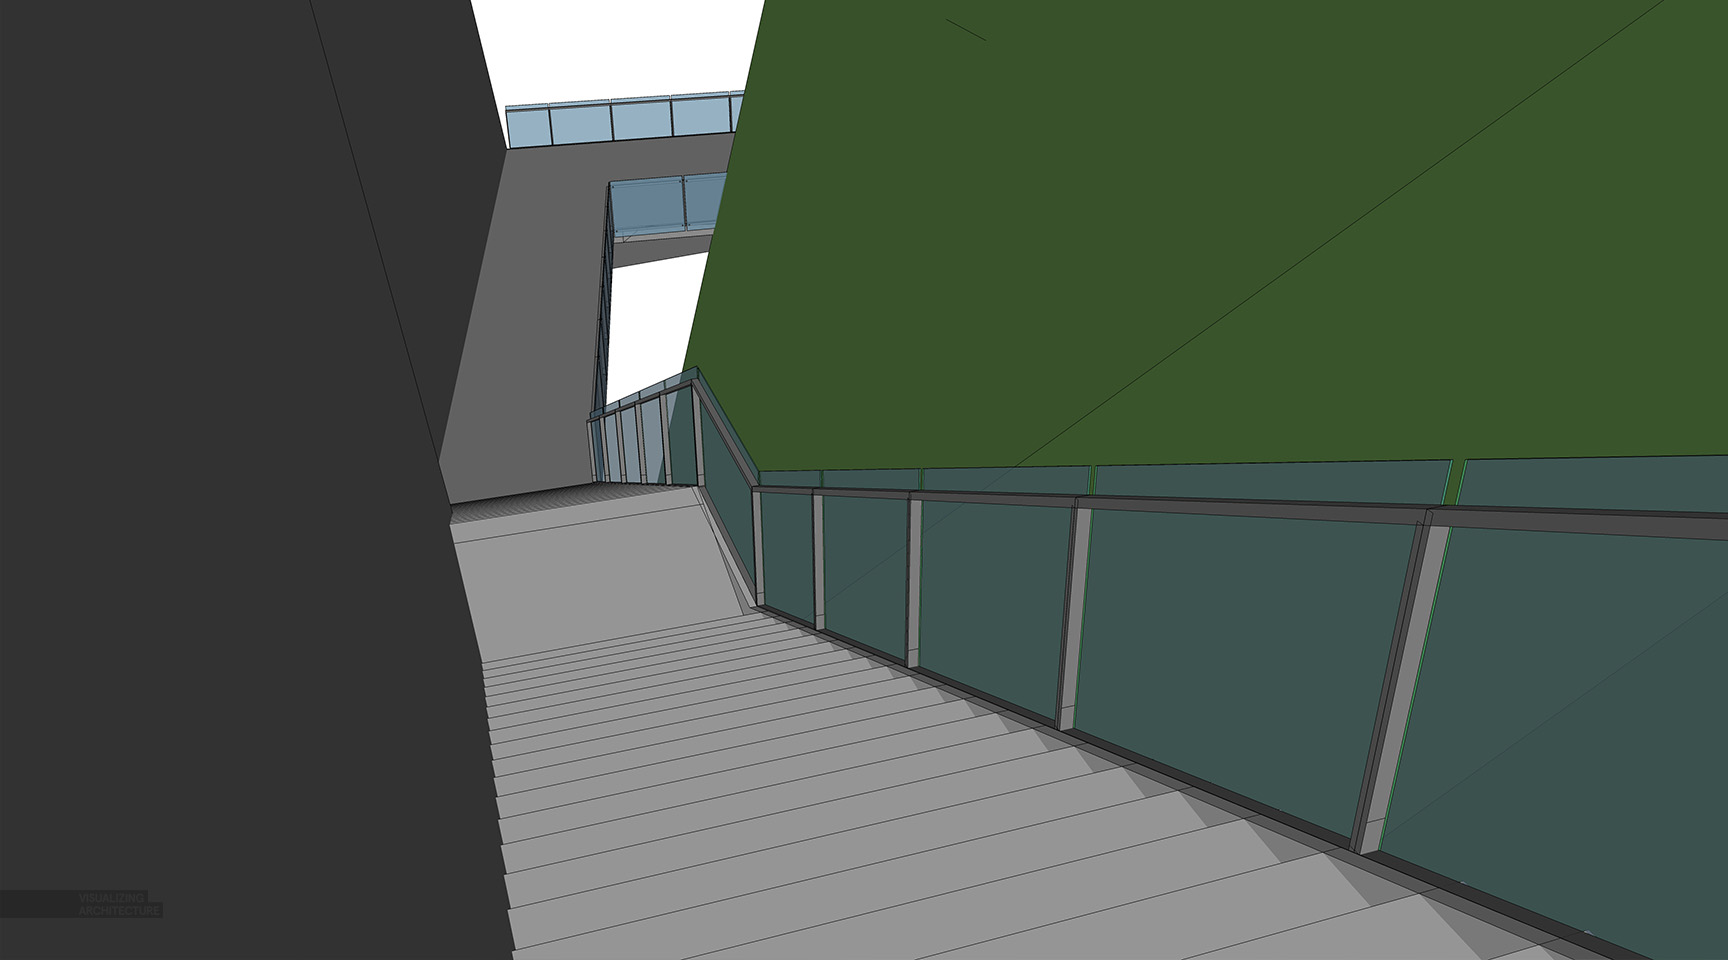 Cliff_Moments_5_Sketchup_alexhogrefe